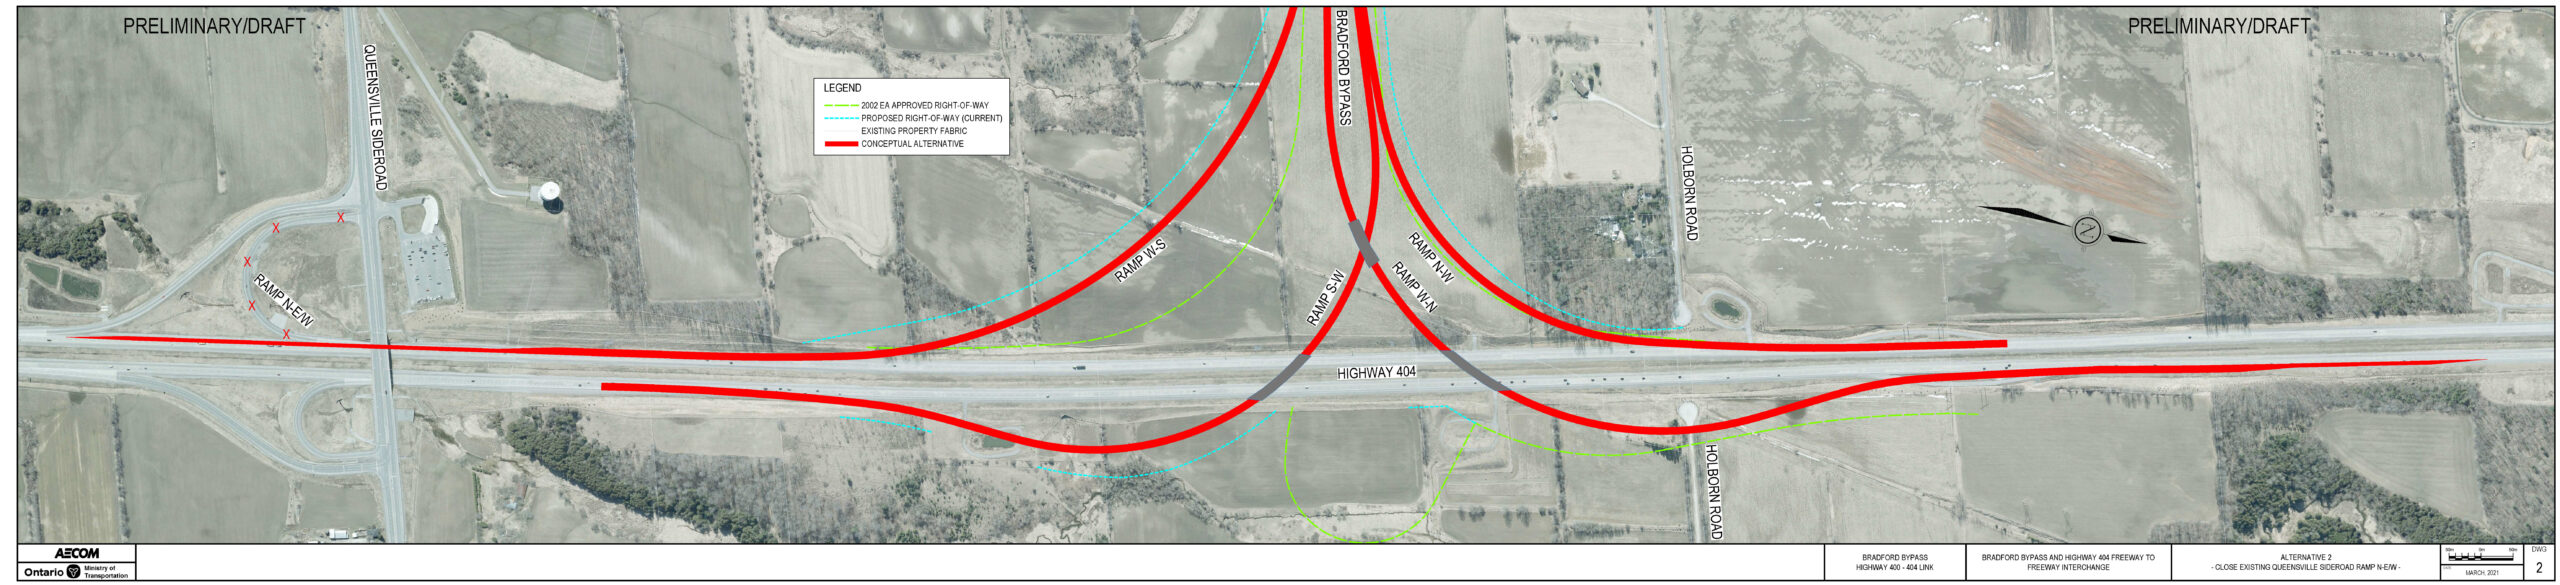 Highway 404 Interchange Refinement Alternative 2 with two lane extension from Bradford Bypass beyond Queensville Sideroad and remove existing Queensville Sideroad ramp